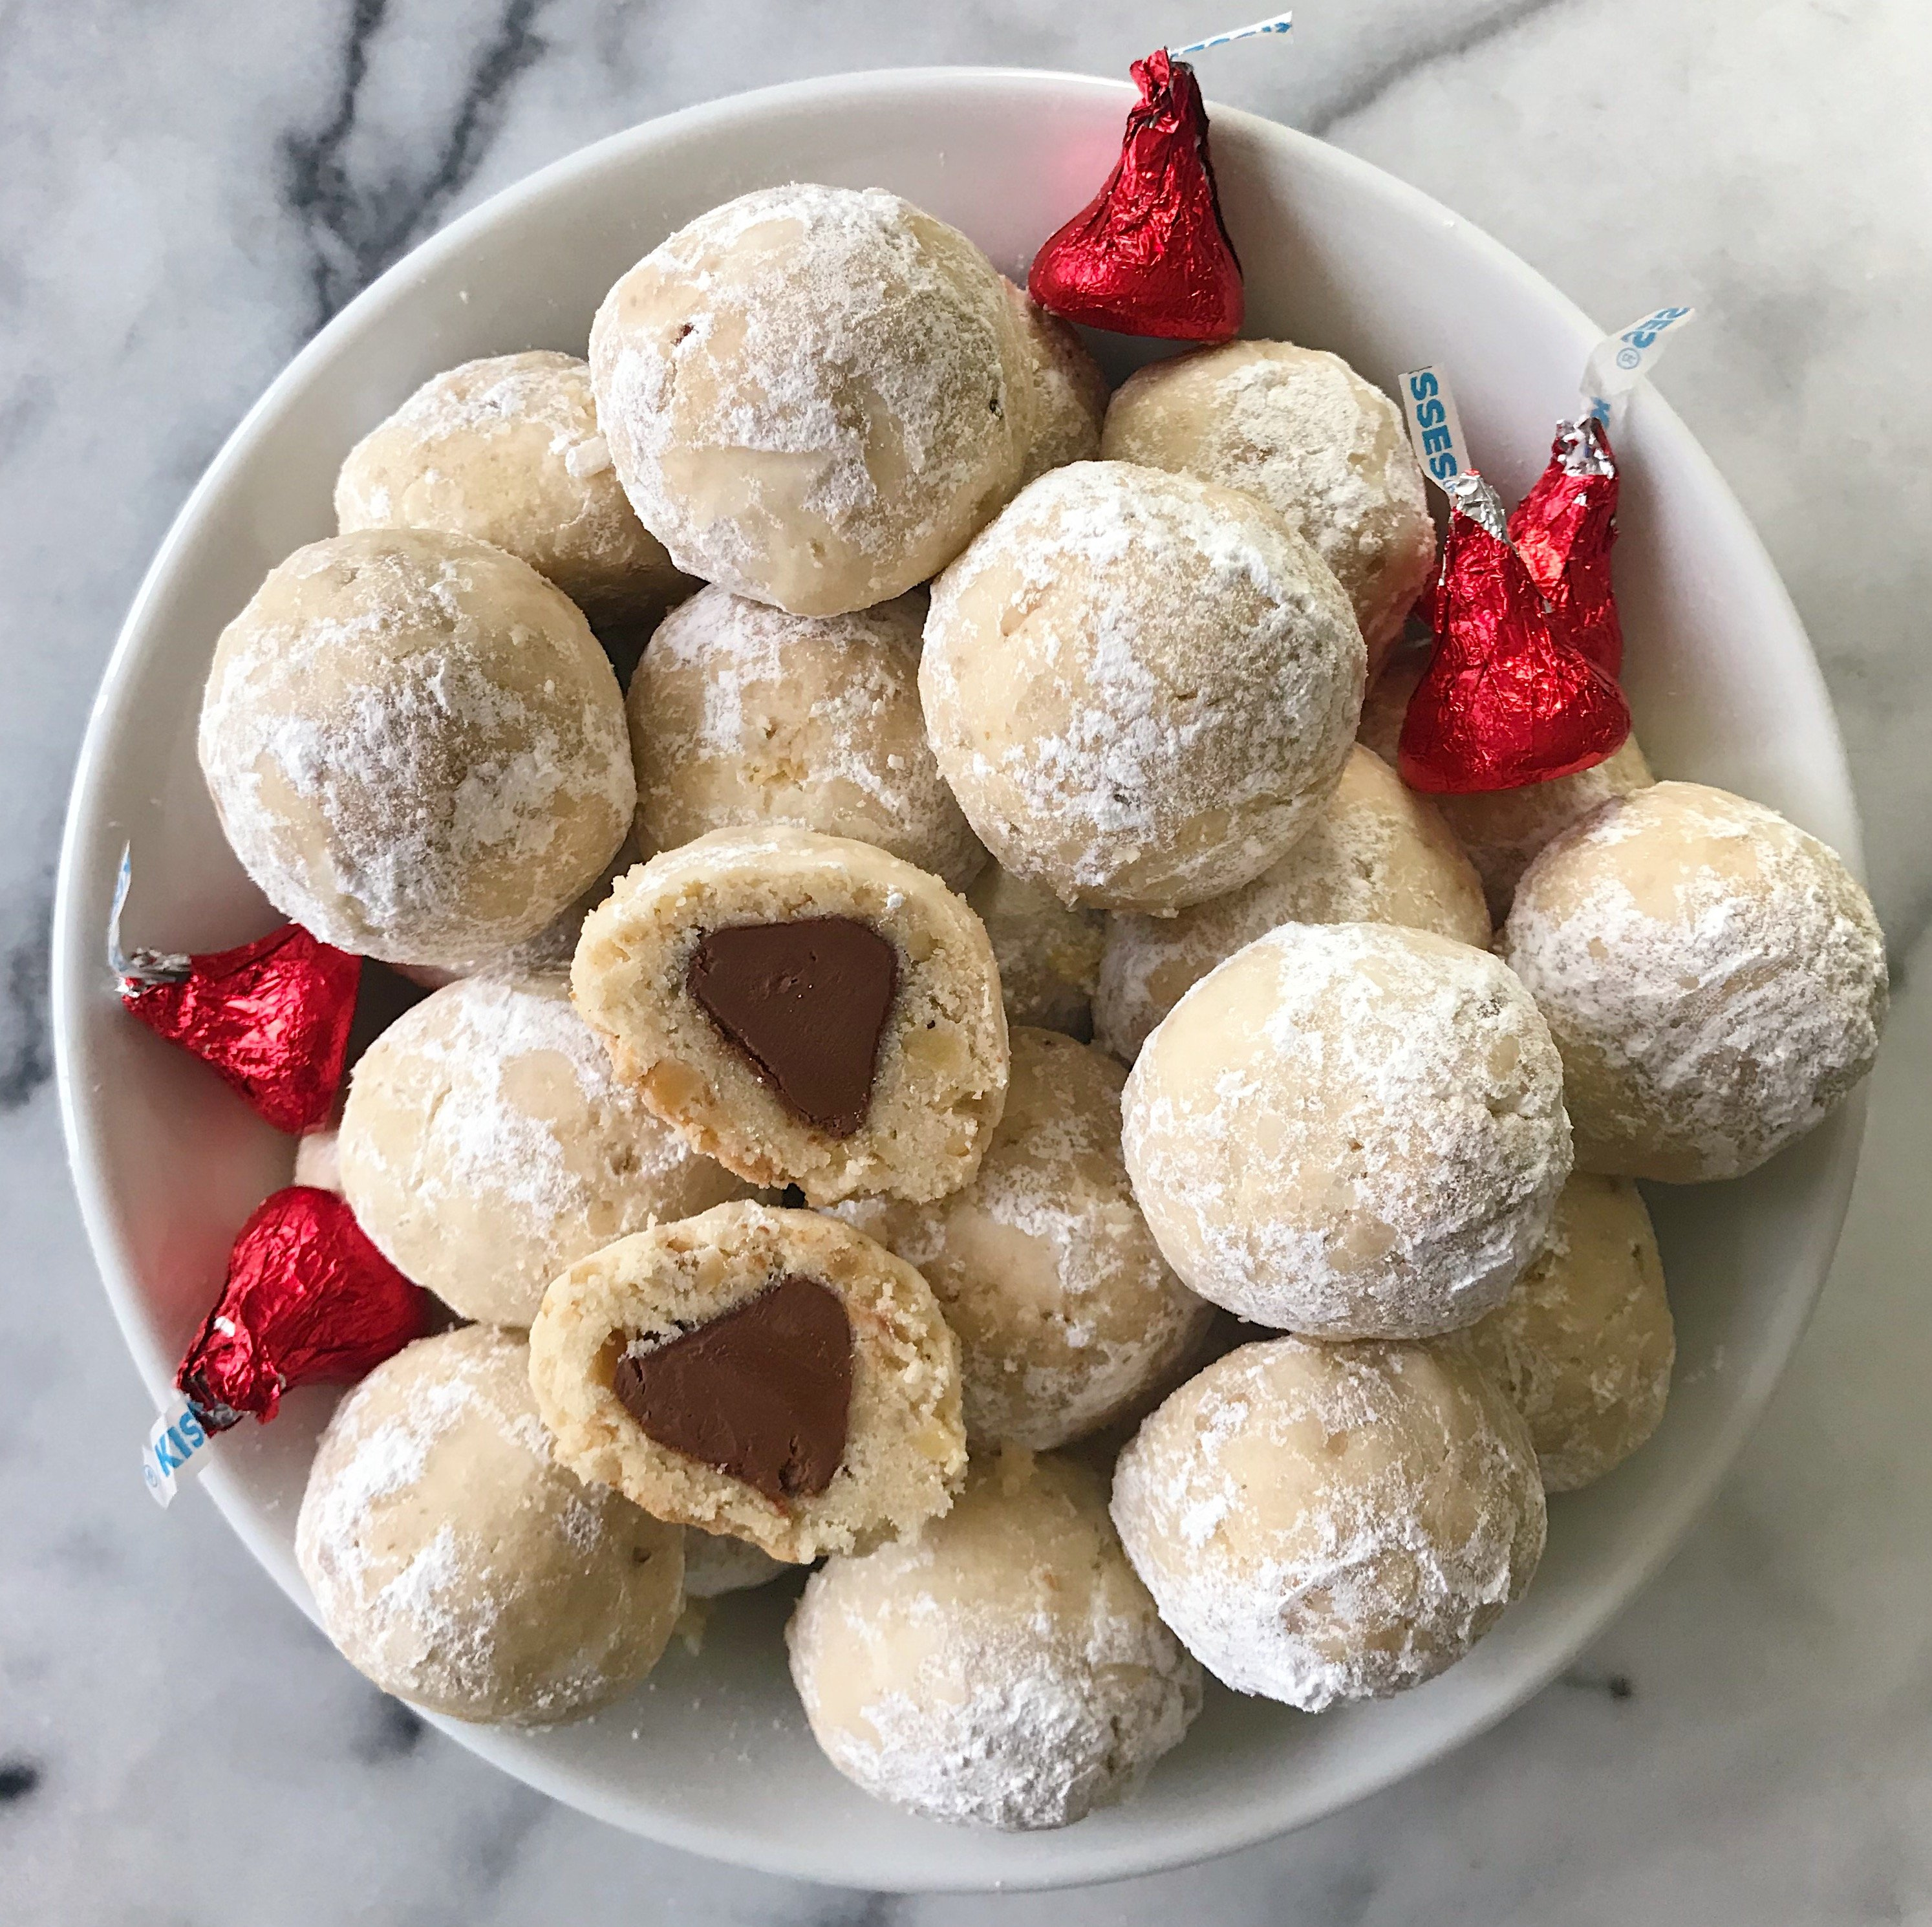 Hidden Chocolate Kiss Cookies gluten free christmas cookies #glutenfree #glutenfreerecipes www.healthygffamily.com